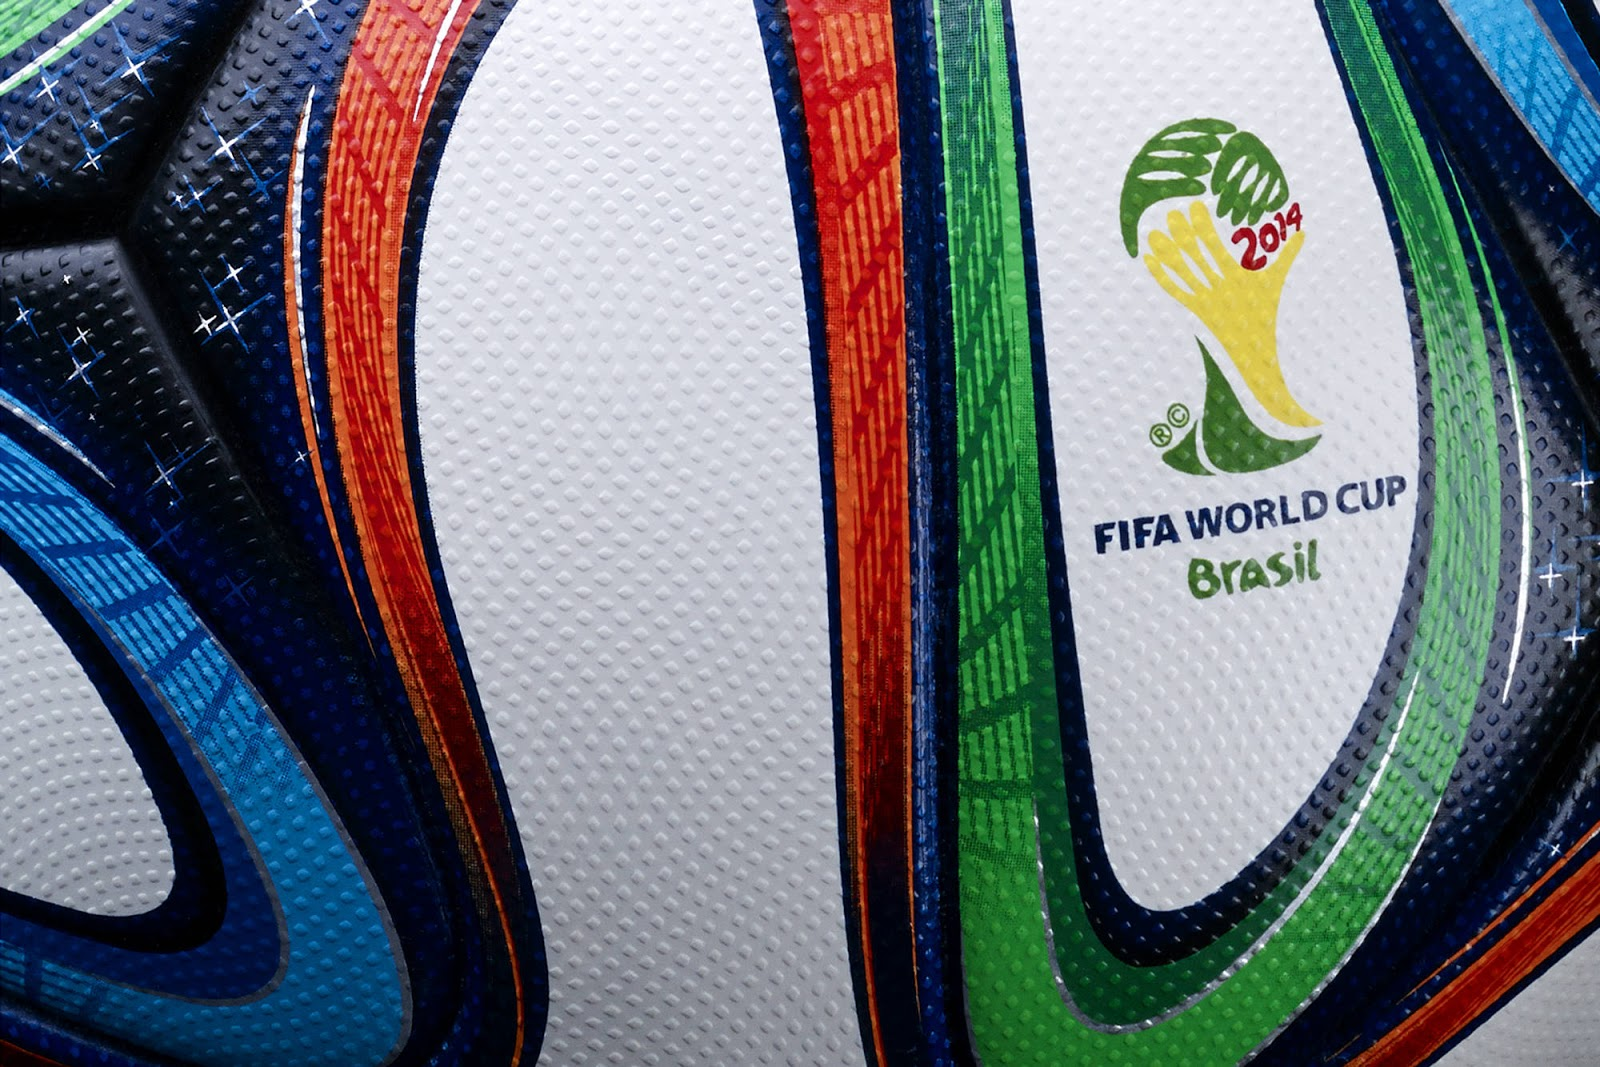 Adidas-Brazuca-World-Cup-Ball-wallpaper-wp3402178